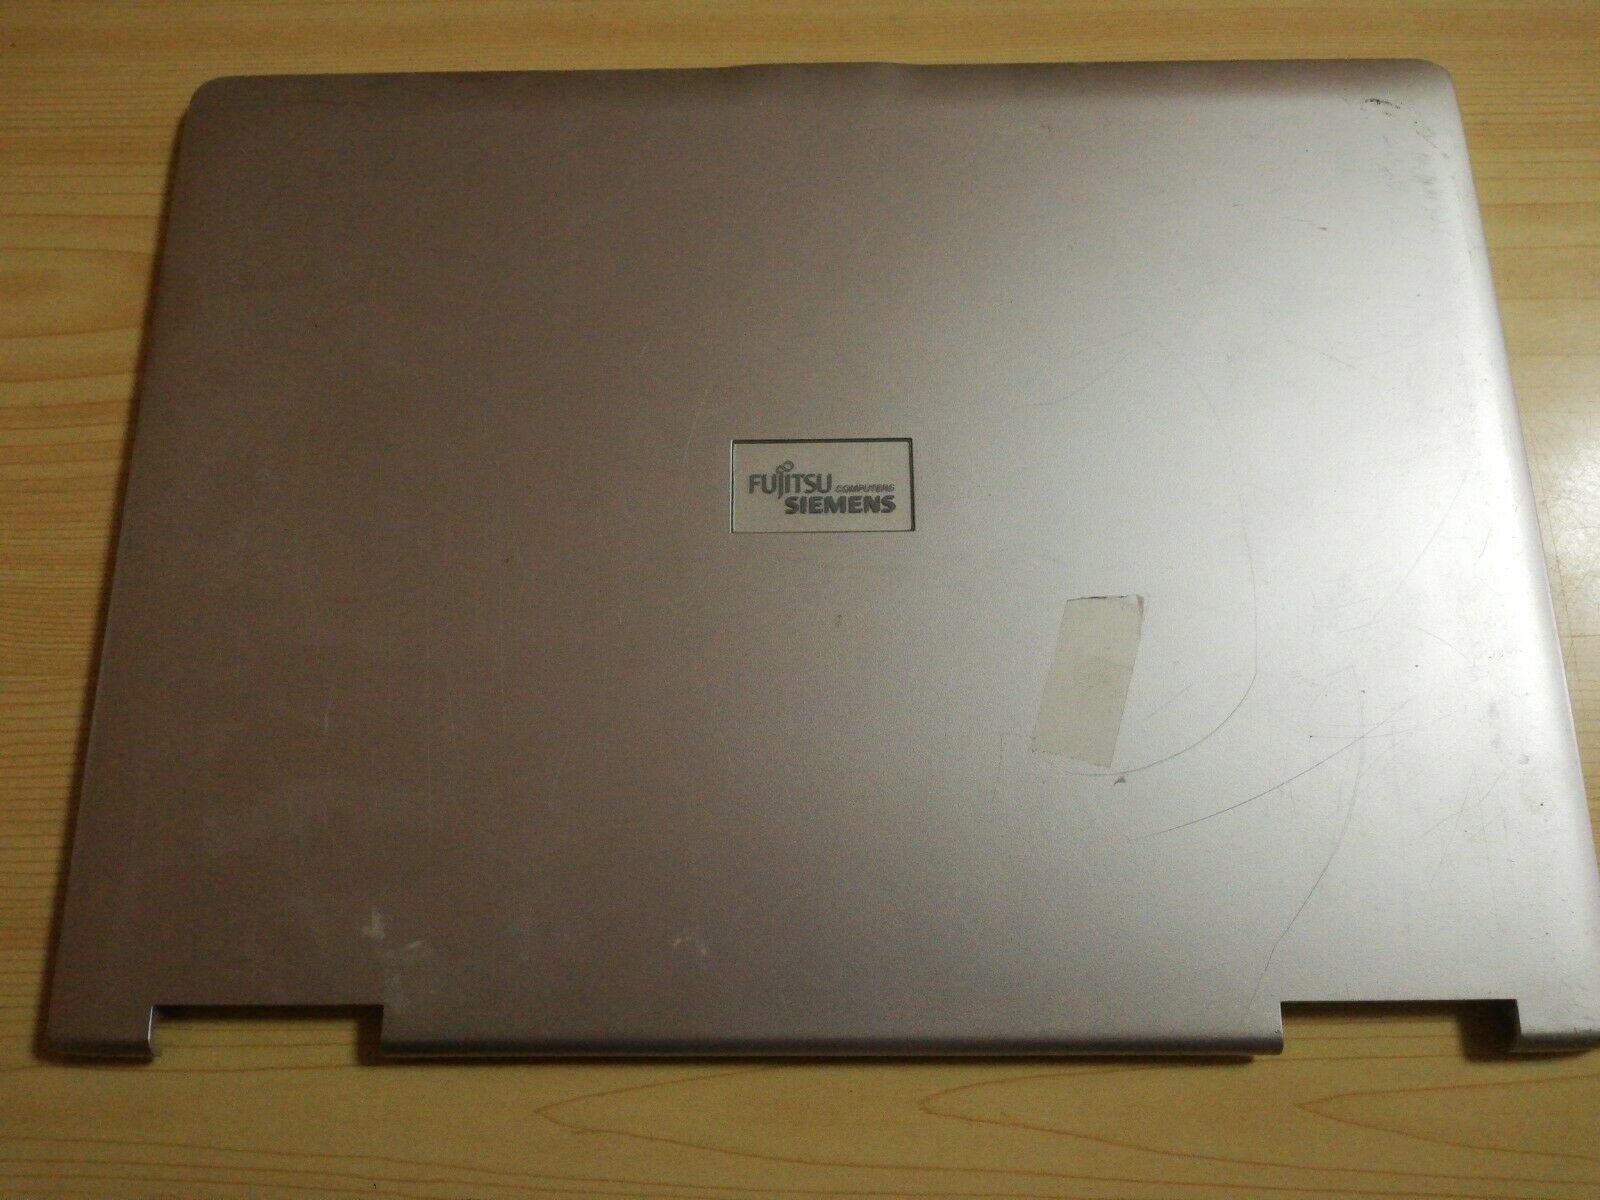 Housing frame for lcd screen for fujitso siemens amilo a1650g